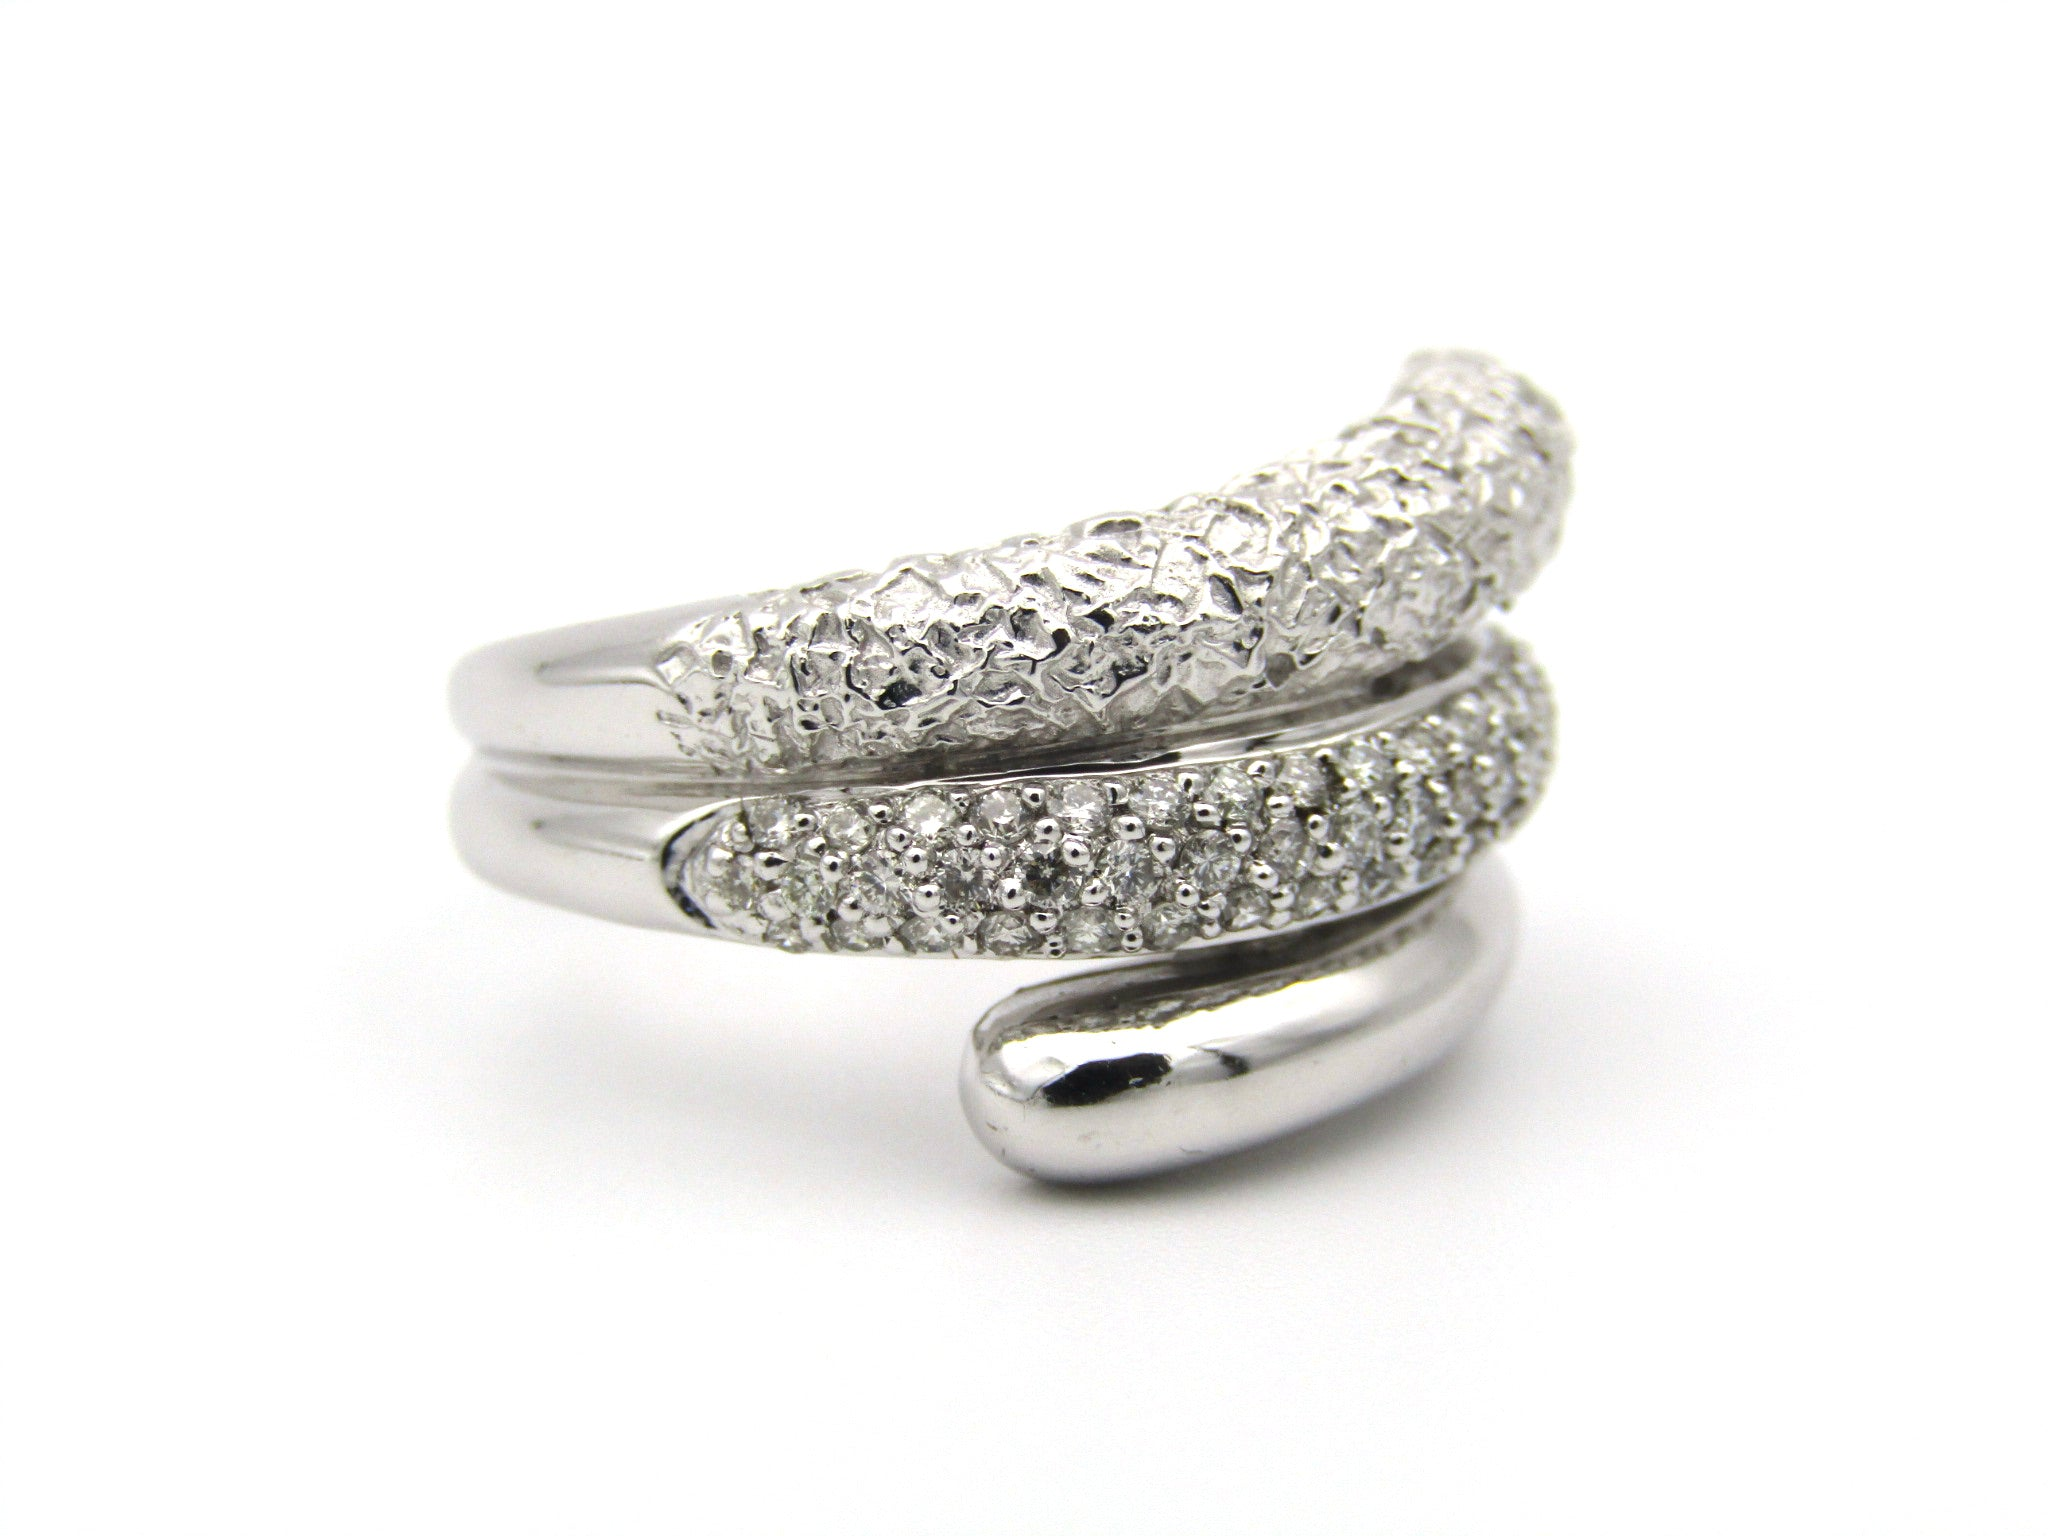 9K gold diamond twist ring.